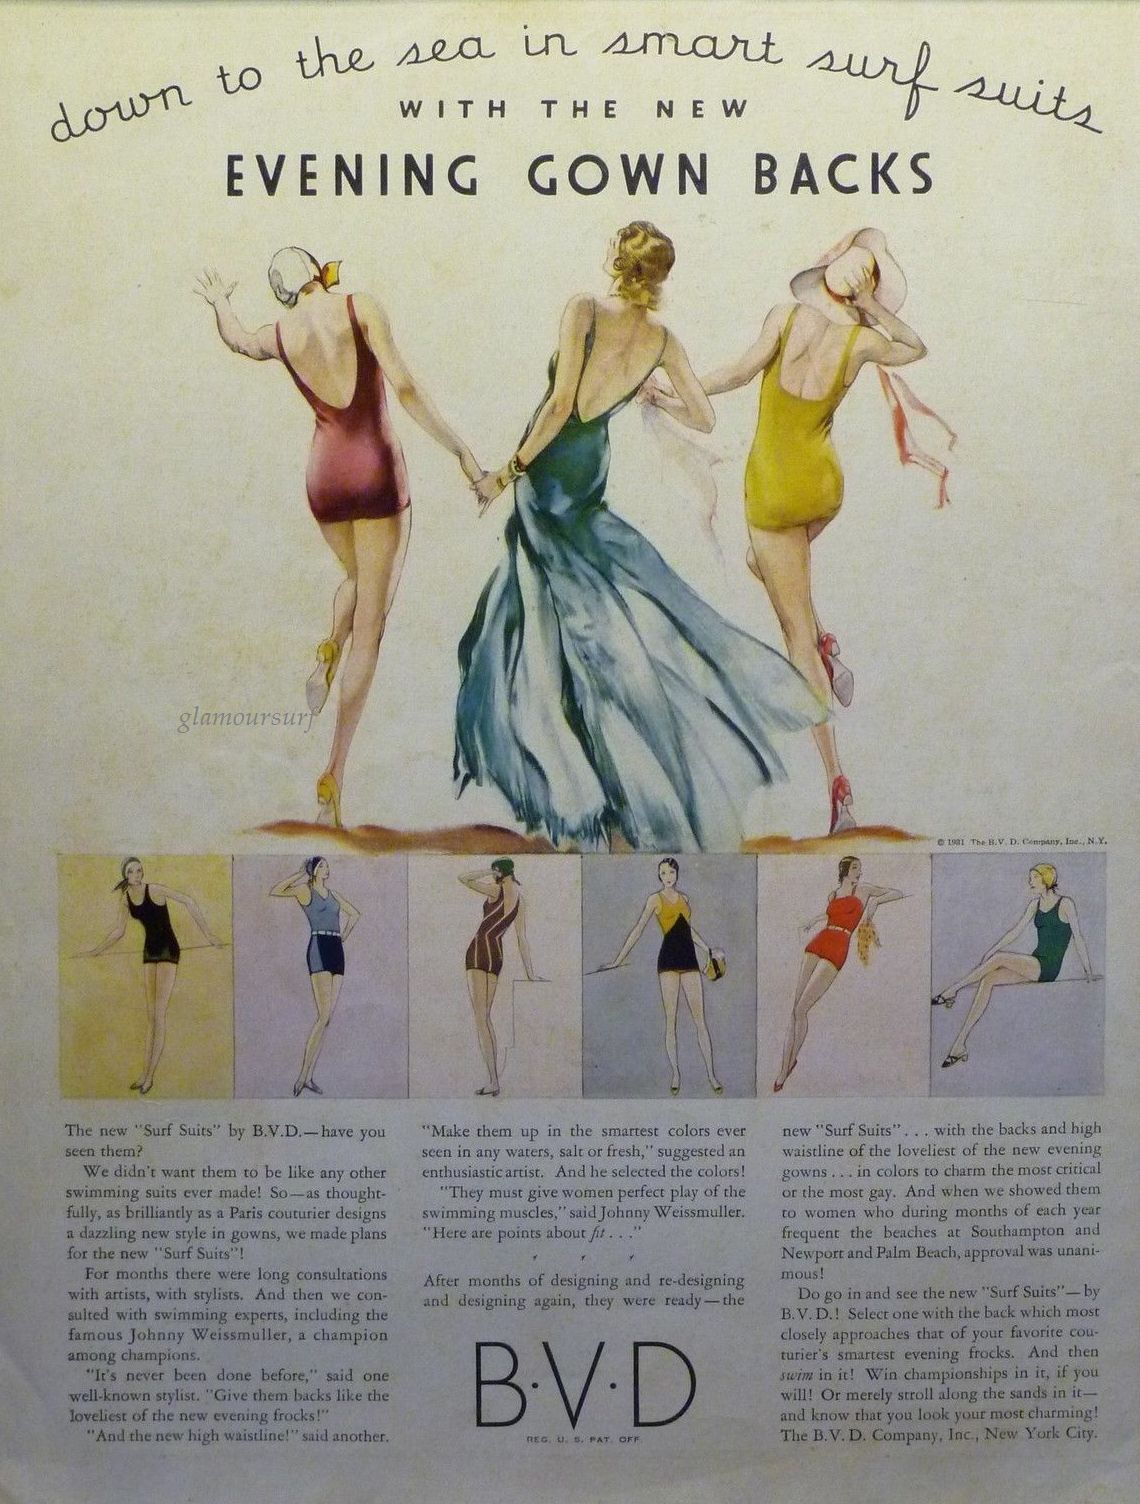 c4391baa38cb0 The year is 1931 and the ad is by swimwear maker B.V.D. In the early 1930s  the backs of bathing suits began to show more skin and ...